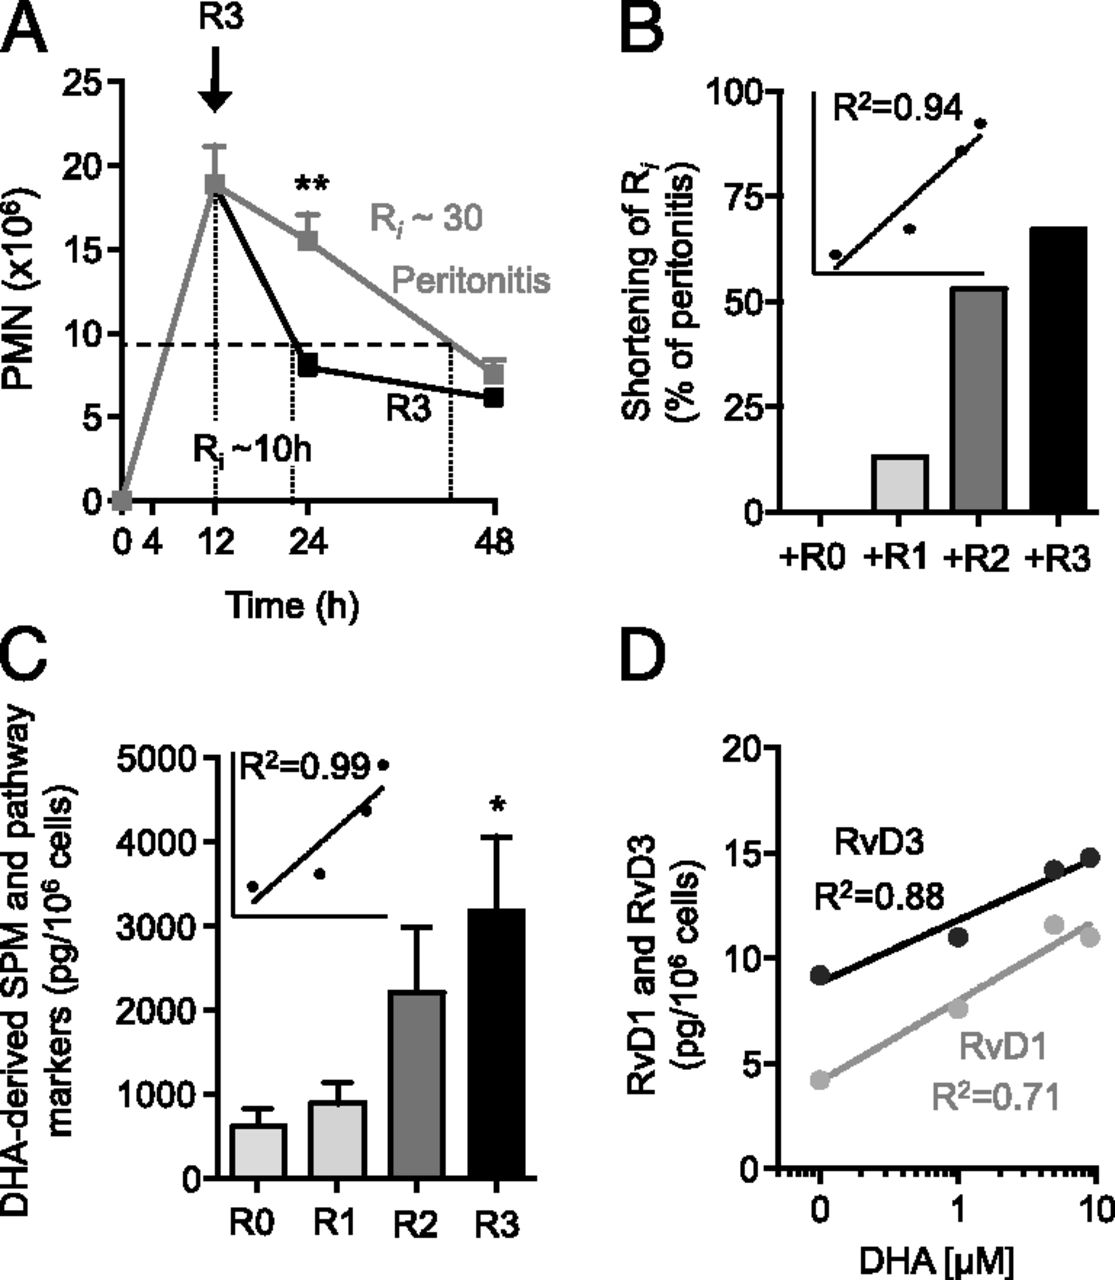 Aging Delays Resolution Of Acute Inflammation In Mice Reprogramming Figure 4 The Circuit Fig 3 But With R1 Replaced By A Short Download